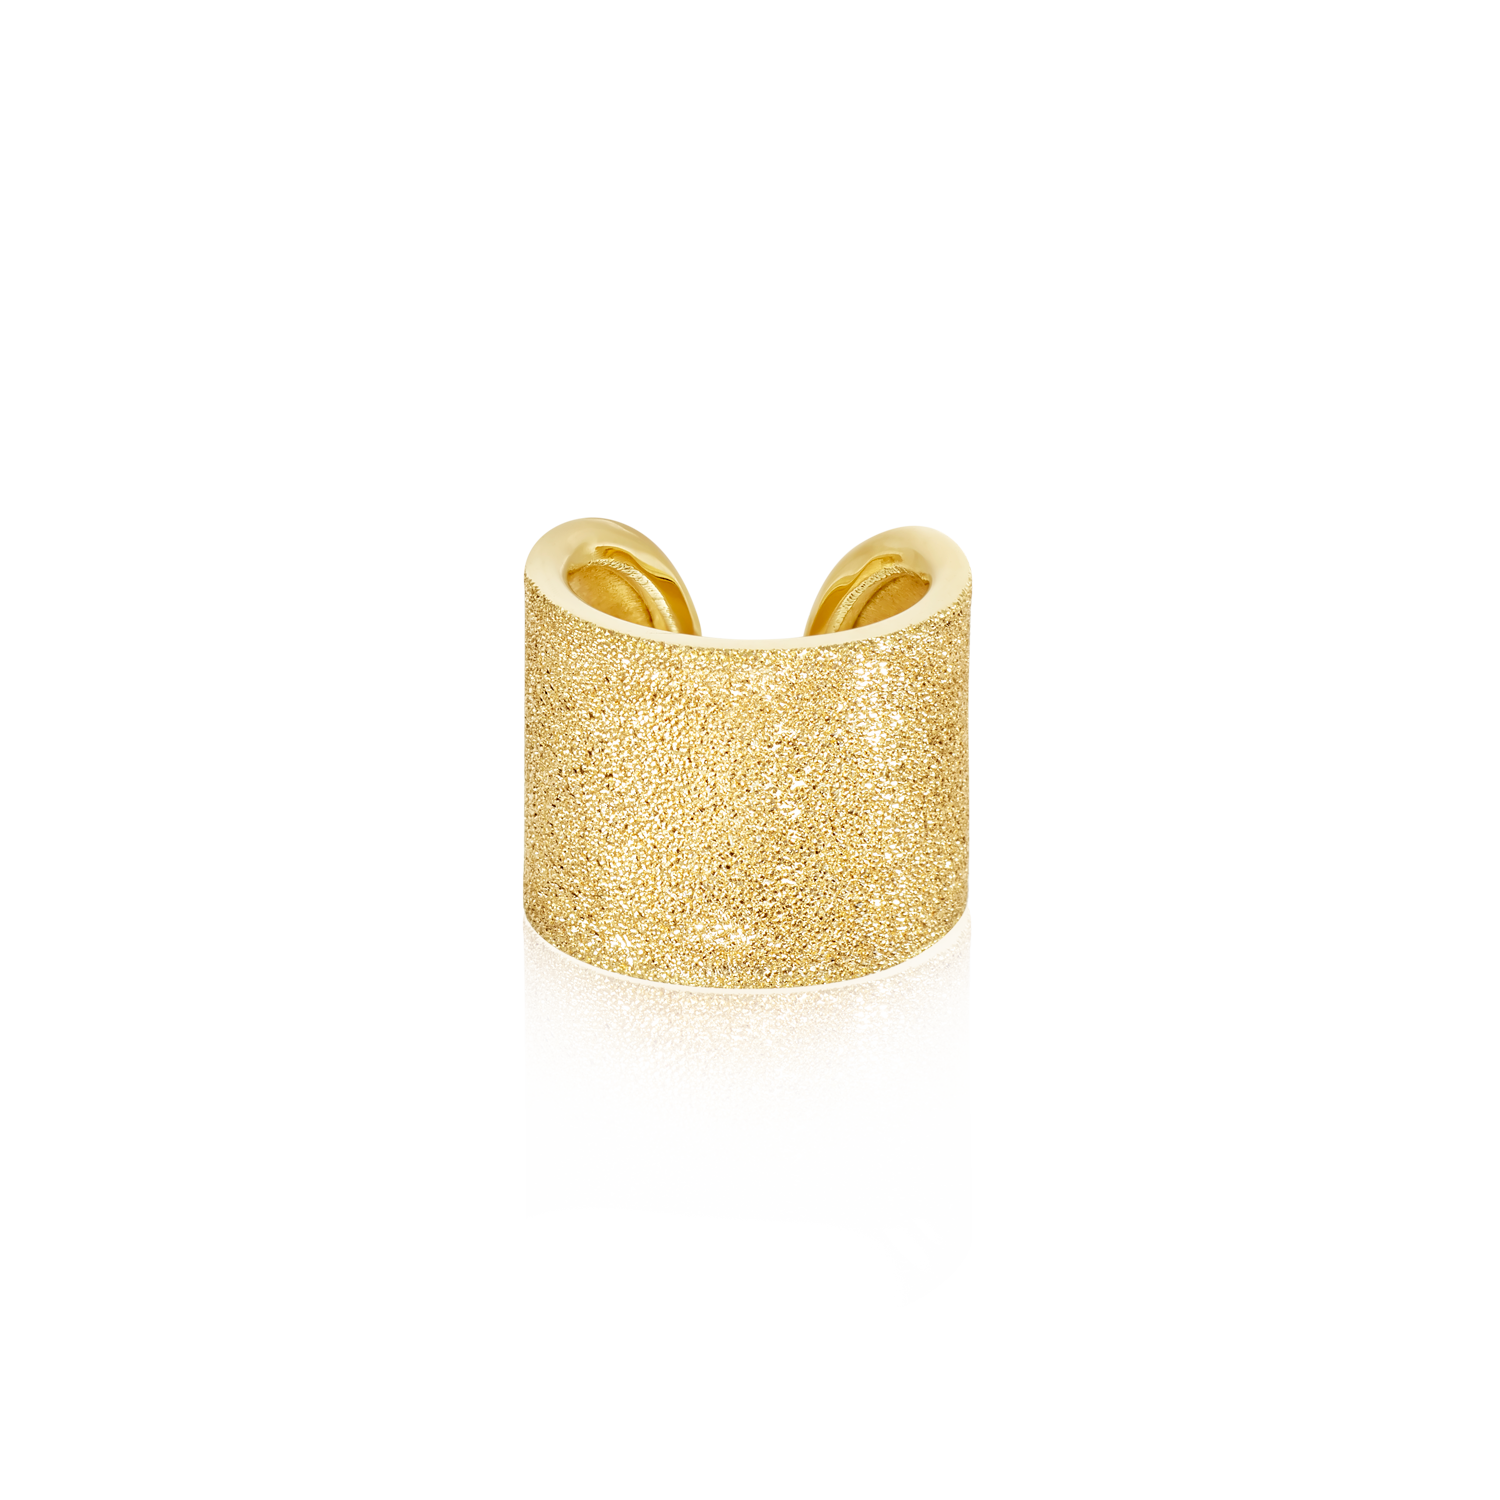 Carolina Bucci Florentine Finish Cuff Ring